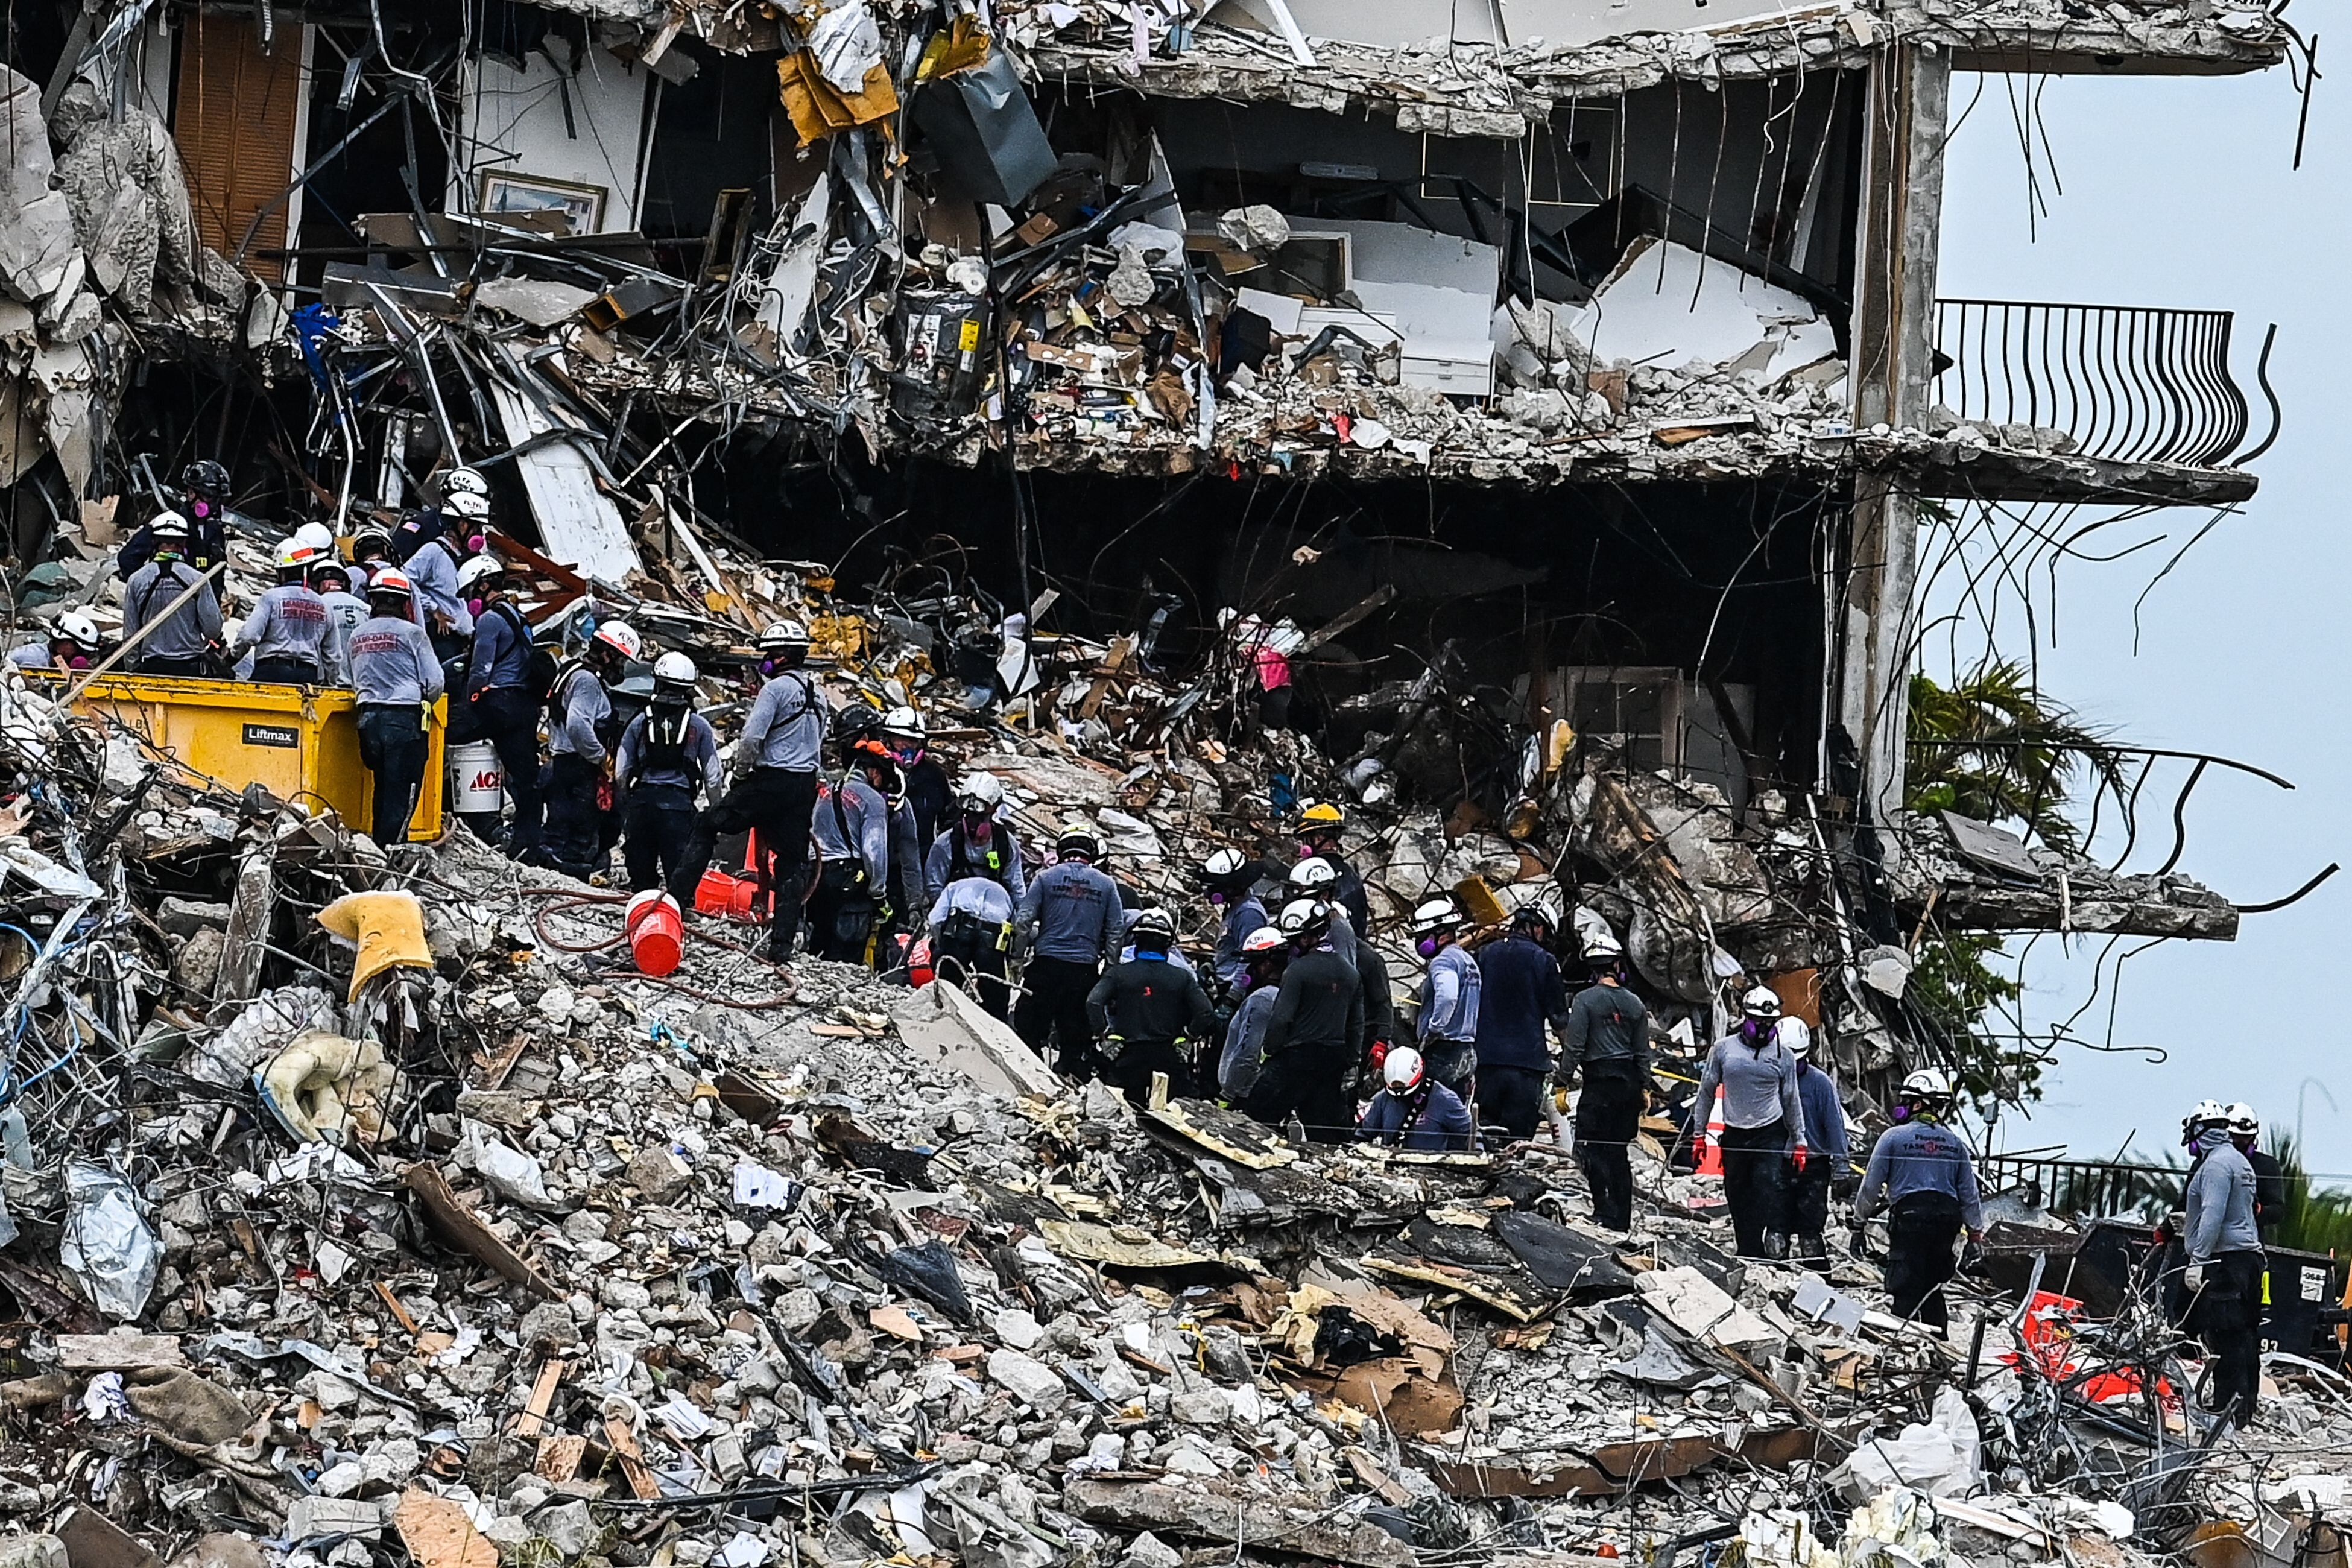 Search and Rescue teams look for possible survivors in the partially collapsed 12-story Champlain Towers South condo building